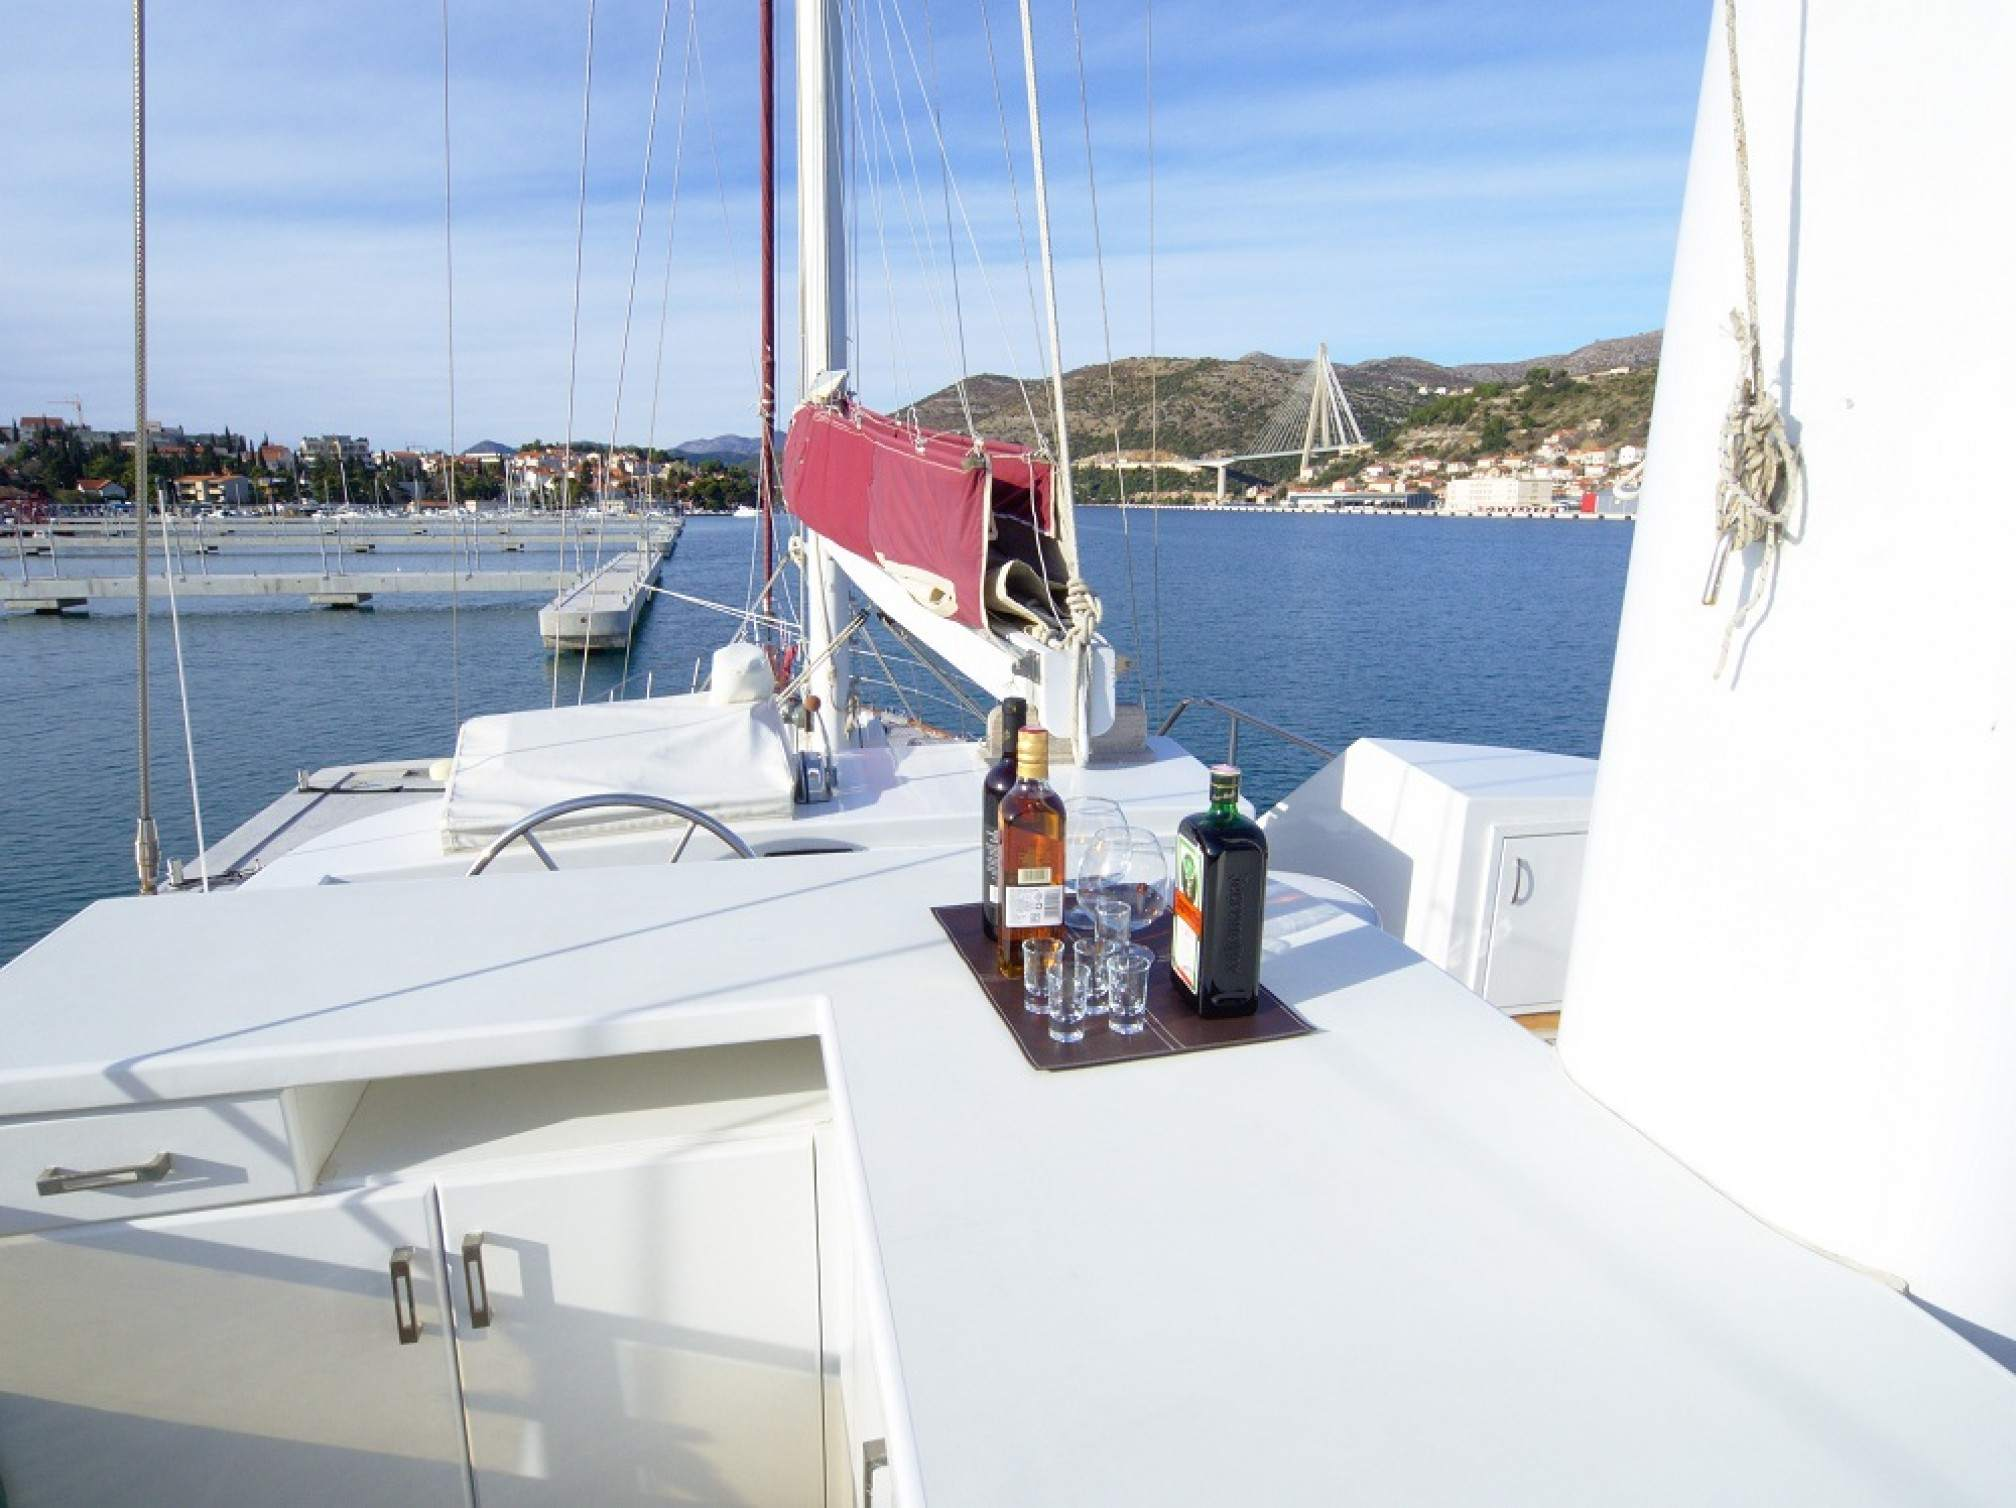 Adriatic Holiday gulet charter outdoors